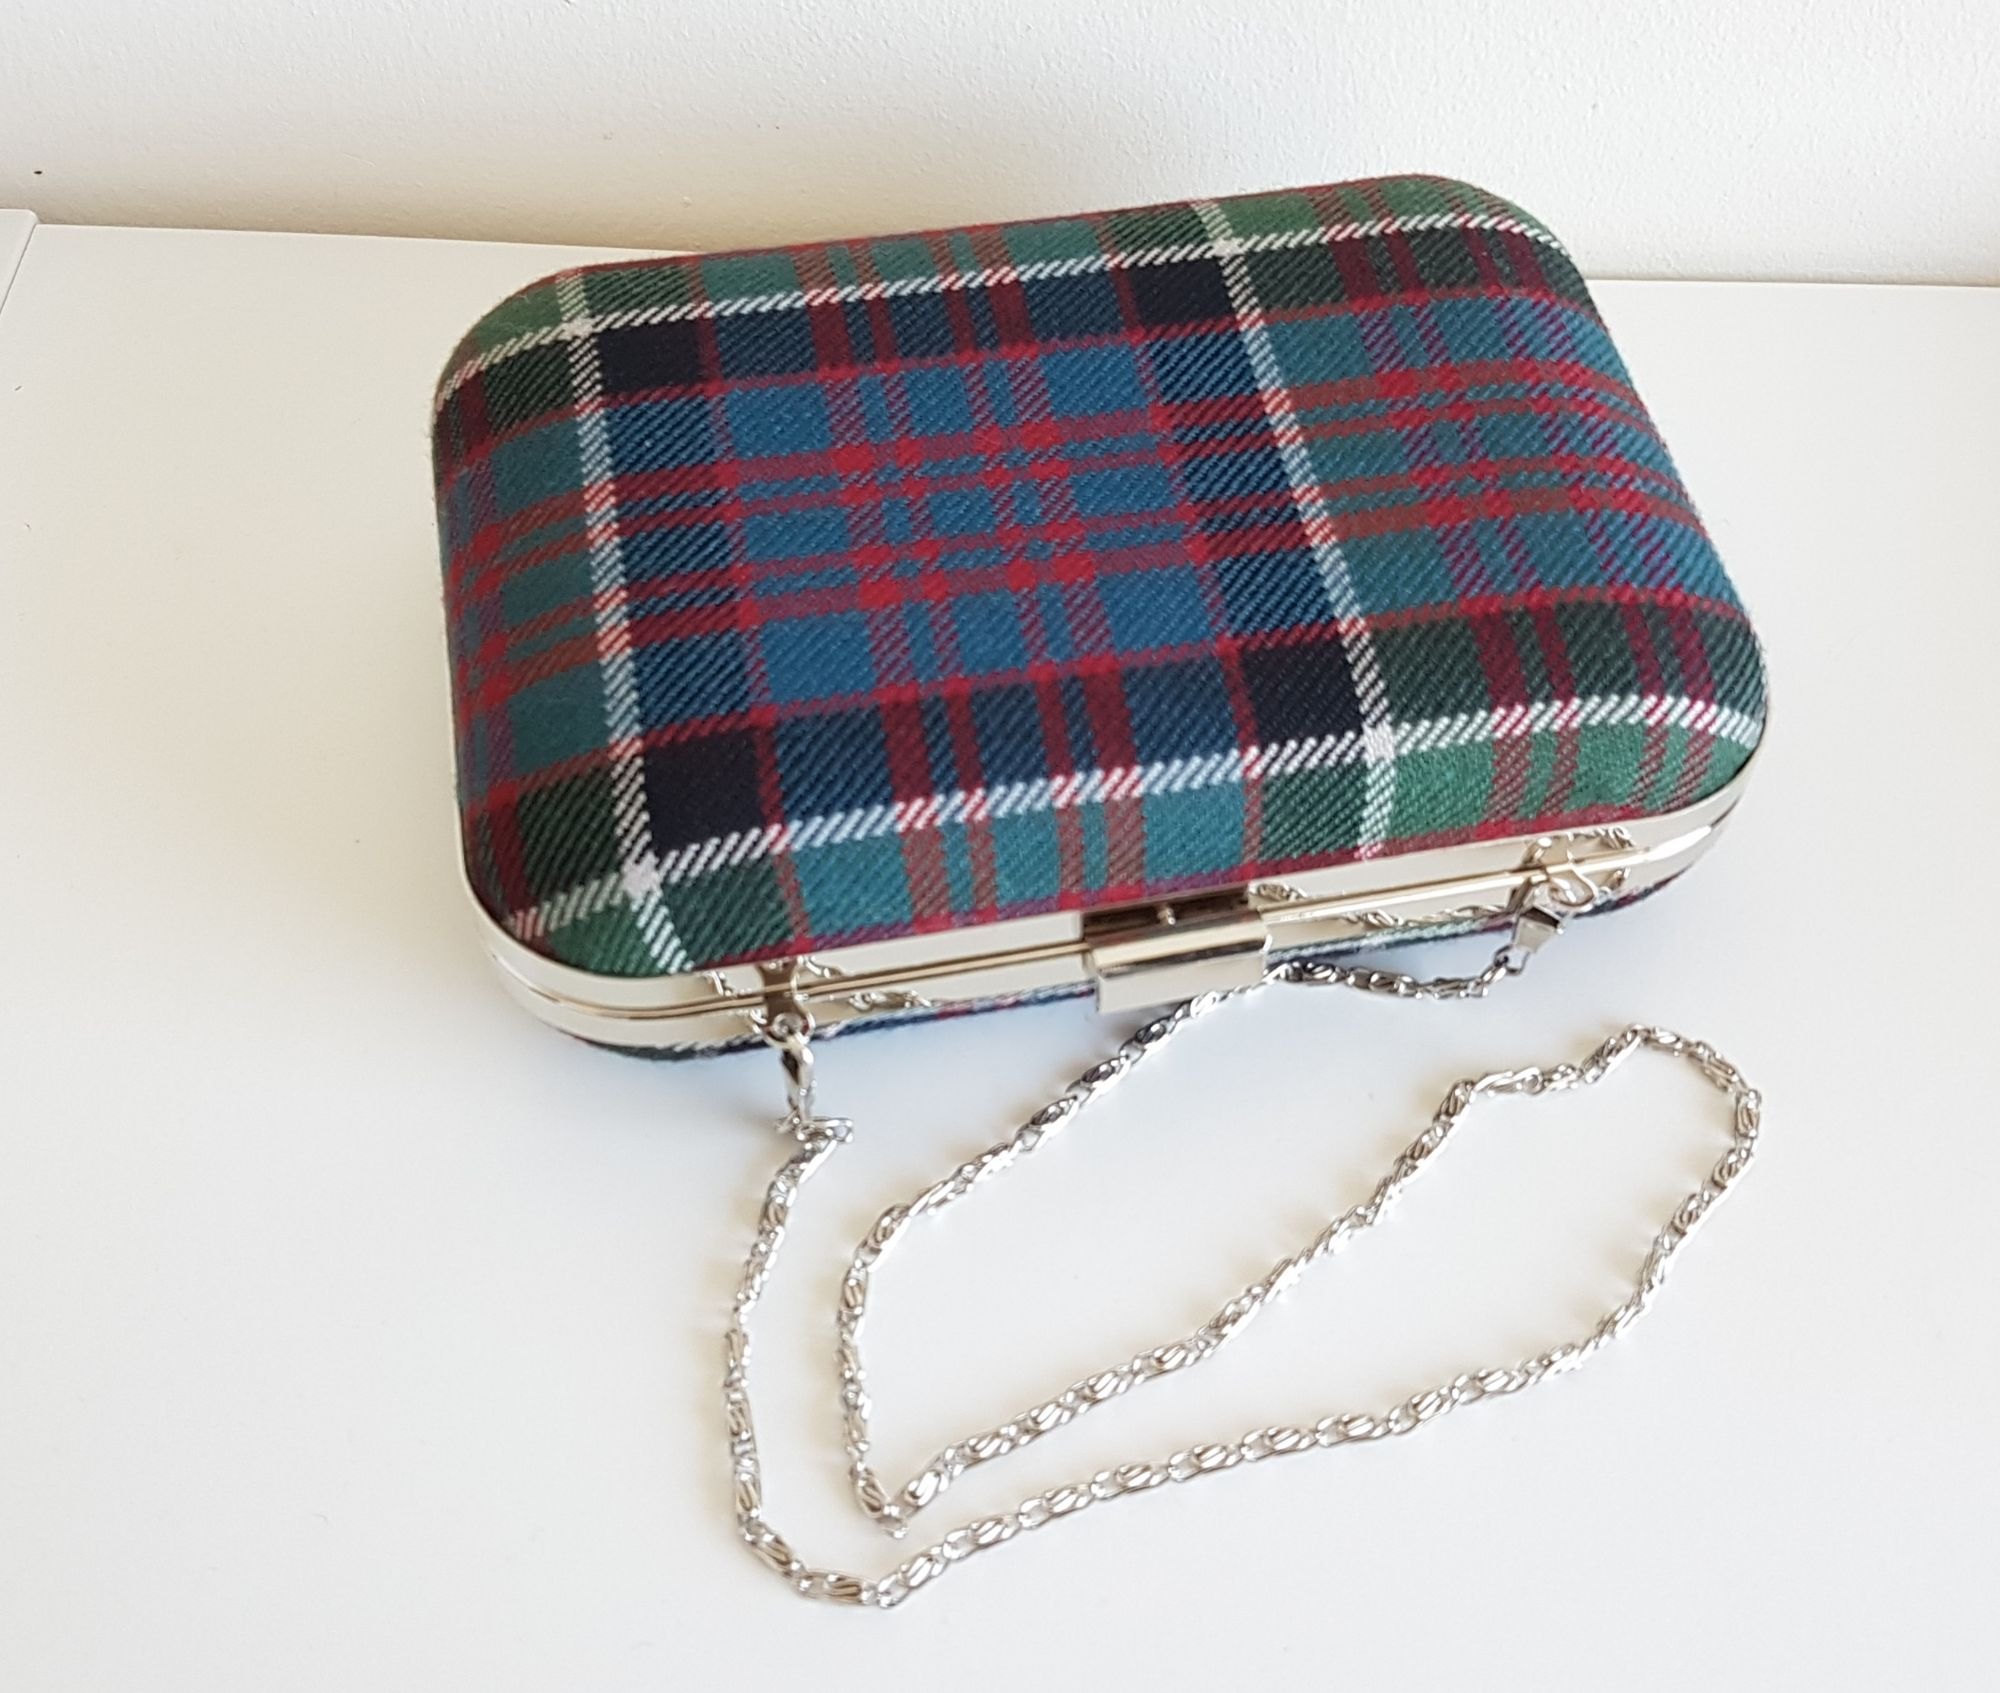 Blue & Green tartan bag